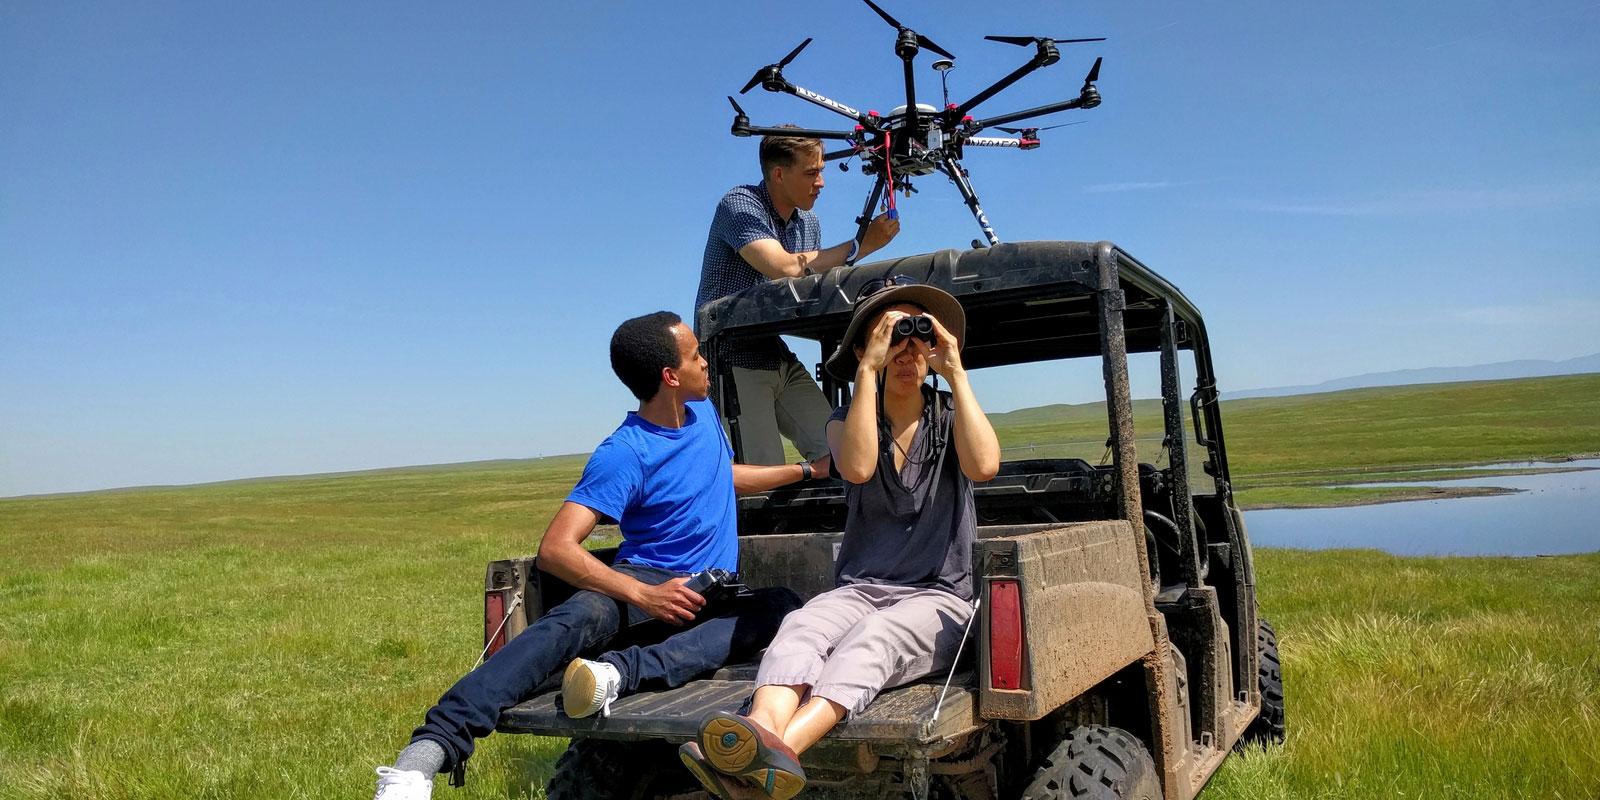 UC Merced engineering students in a field on a jeep